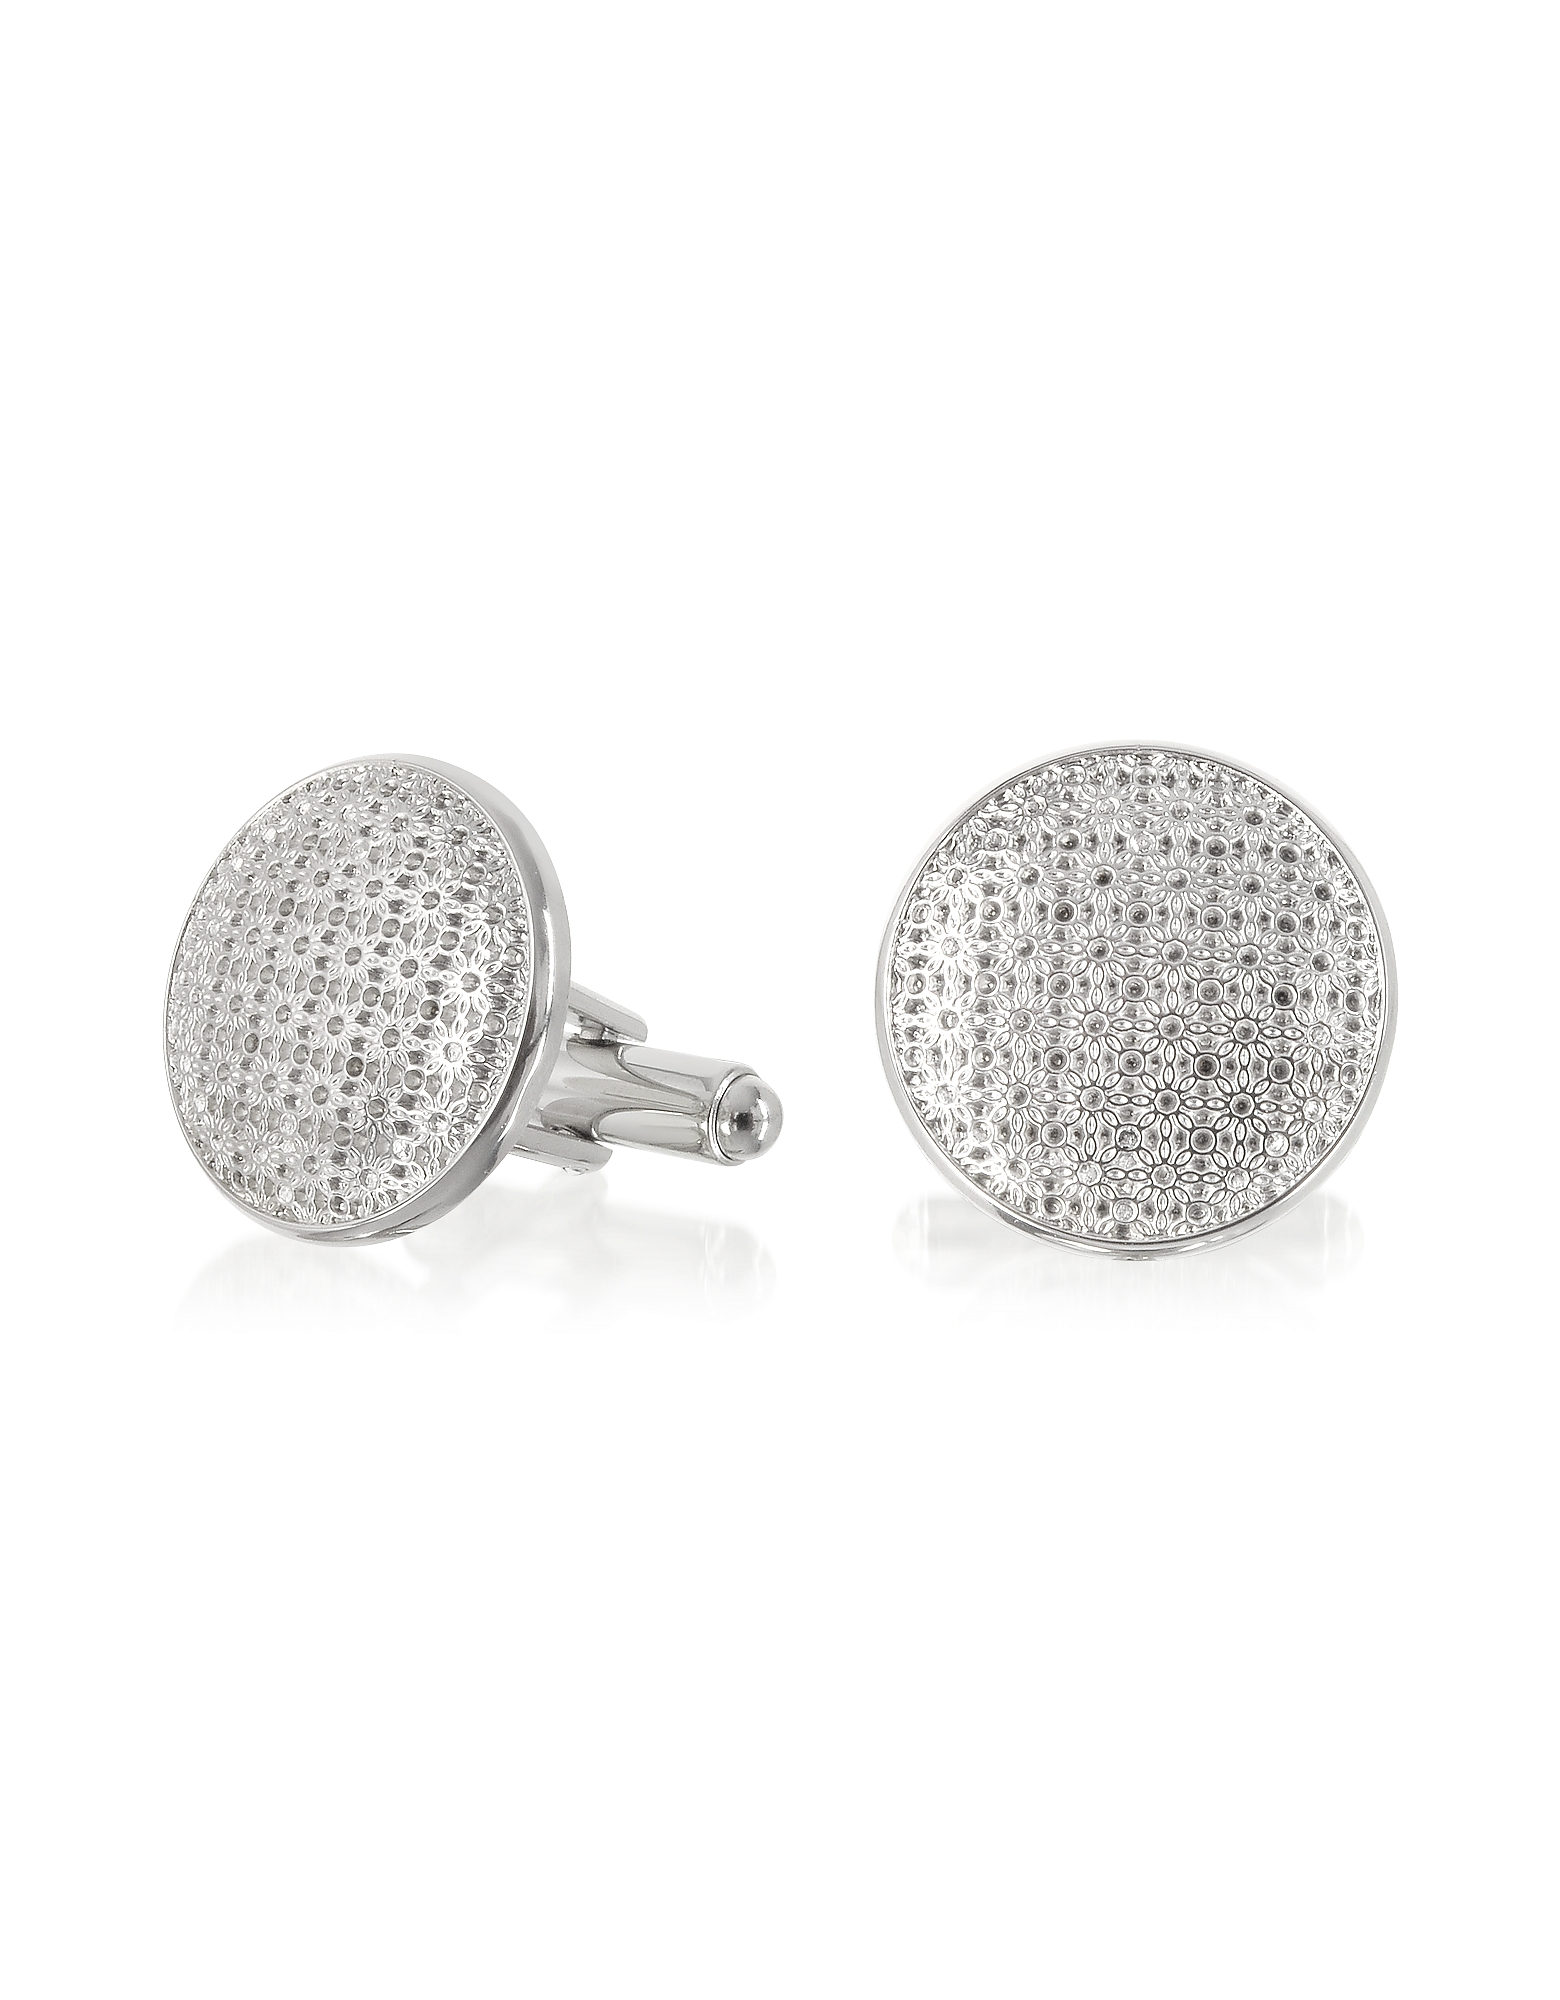 Forzieri Cufflinks, Evergreen - Round Flower Print Cufflinks